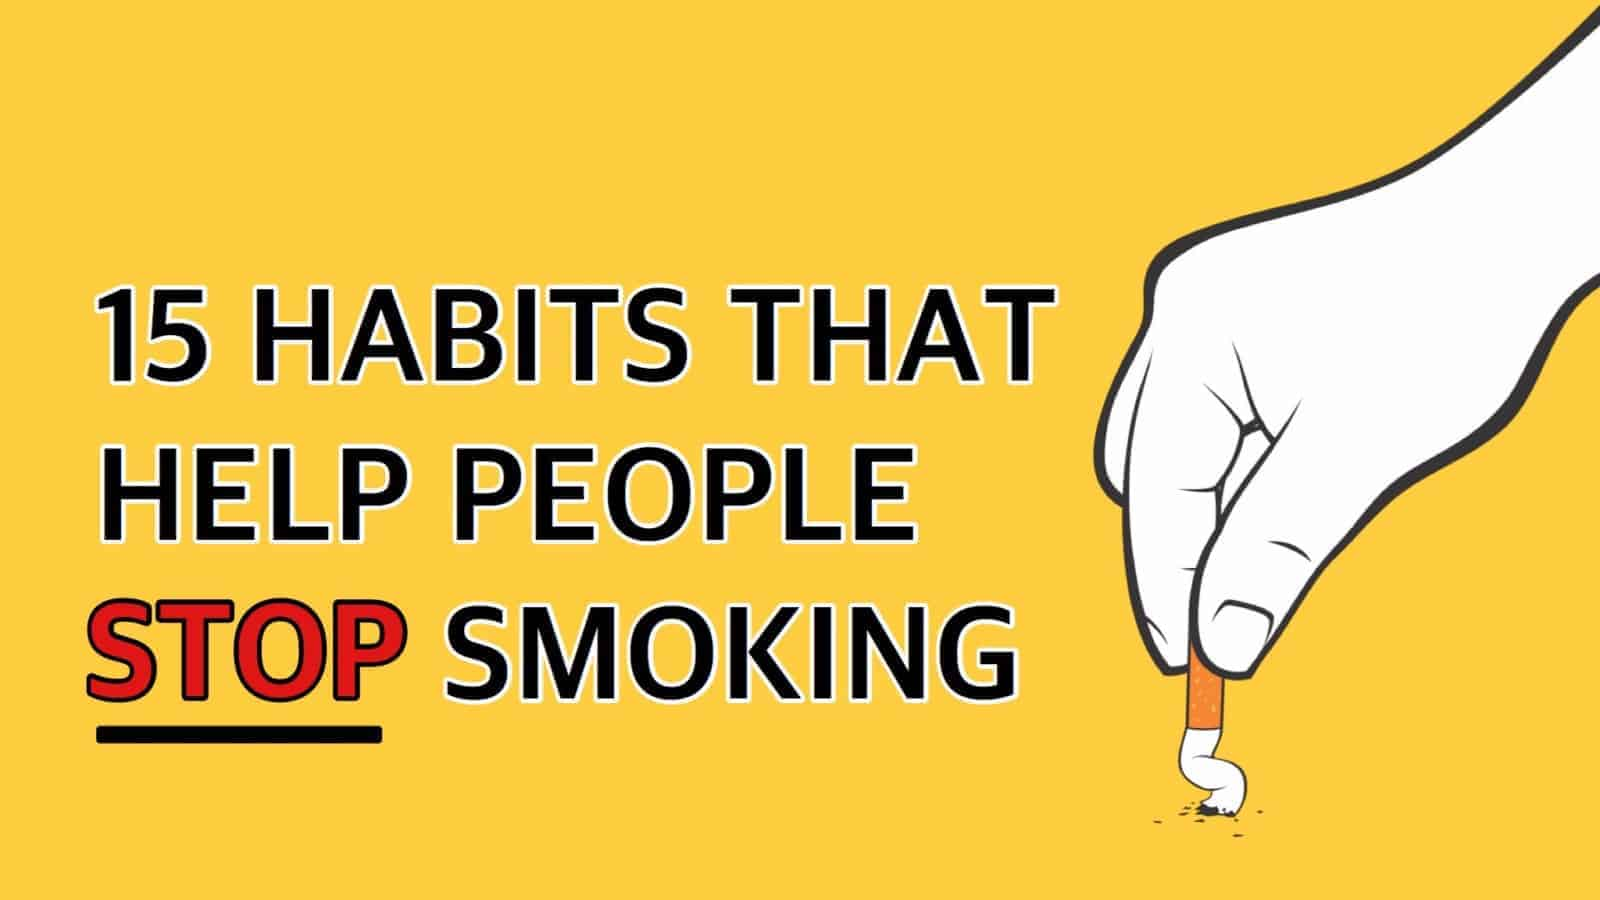 stop smoking How to stop smoking weed if you feel that marijuana is taking over your life and replacing all of your friends, hobbies, and favorite ways to pass the time, then it's time to quit smoking and get your life back on track.